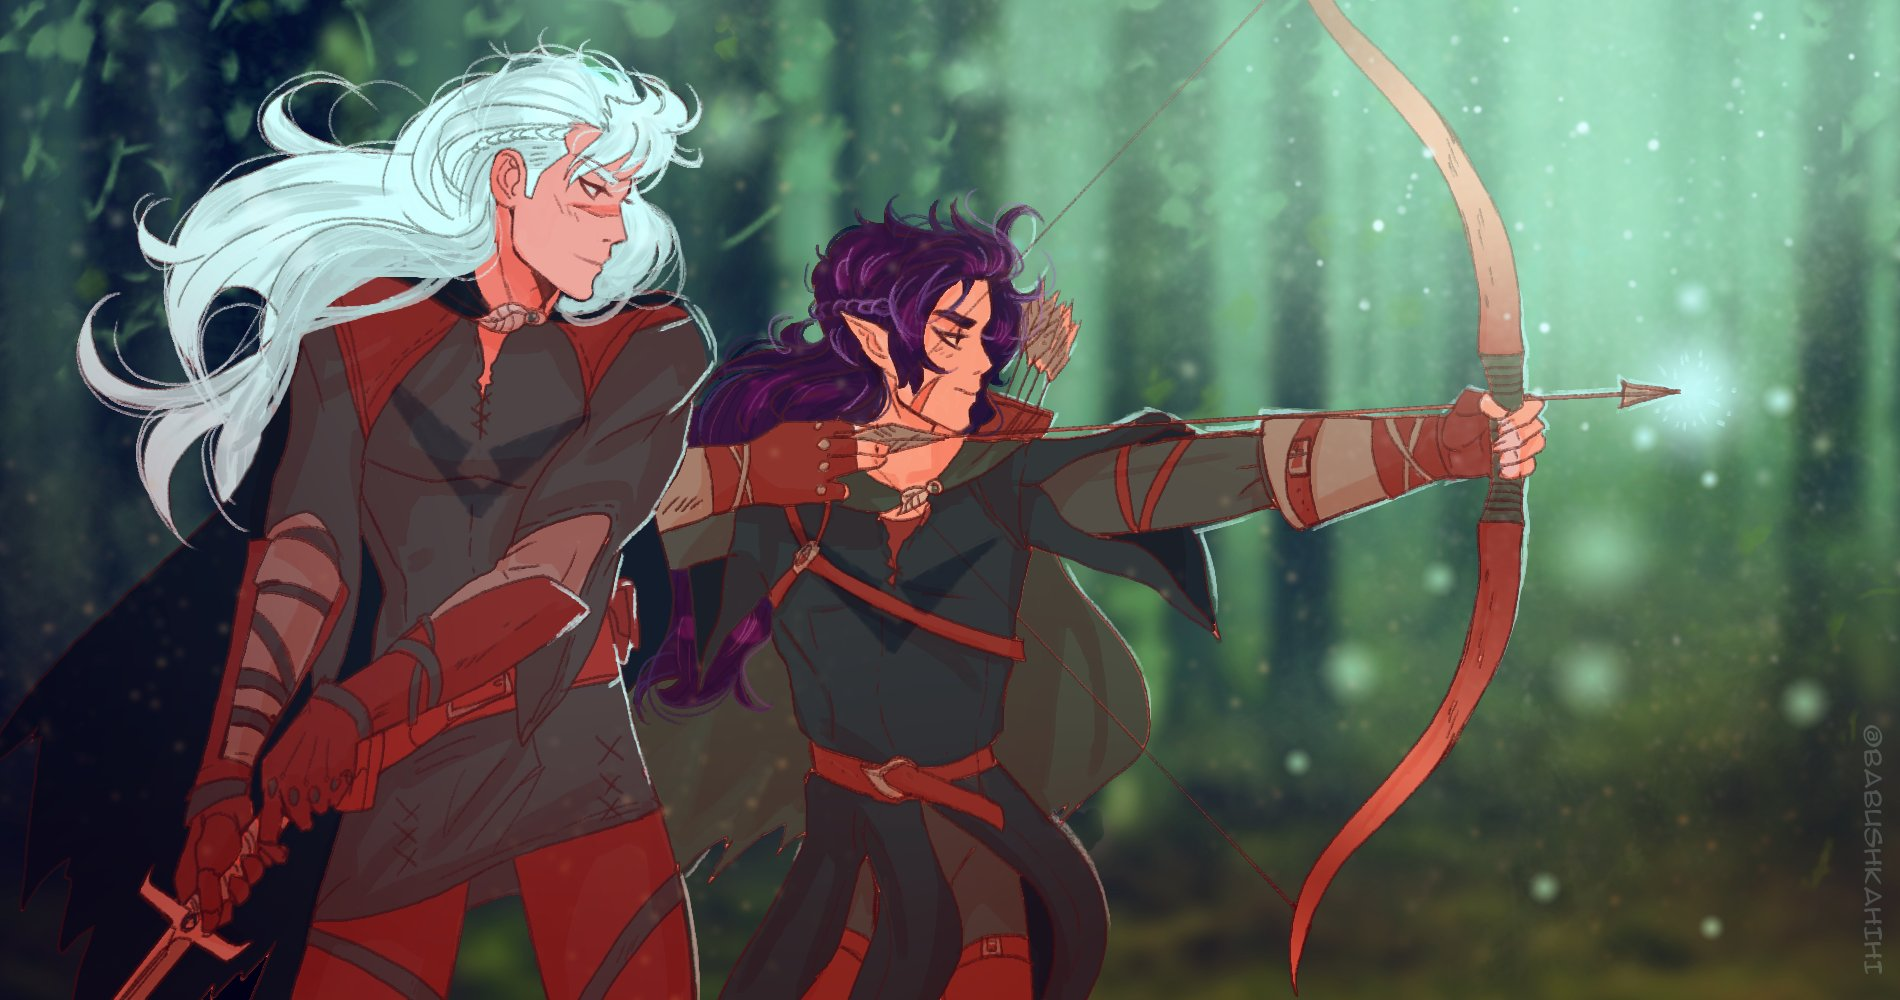 #sheith crossover The Lord of the Rings �� #VLD #Voltron #VoltronLegendaryDefender #shiro #keith https://t.co/vy8z98Bg7W